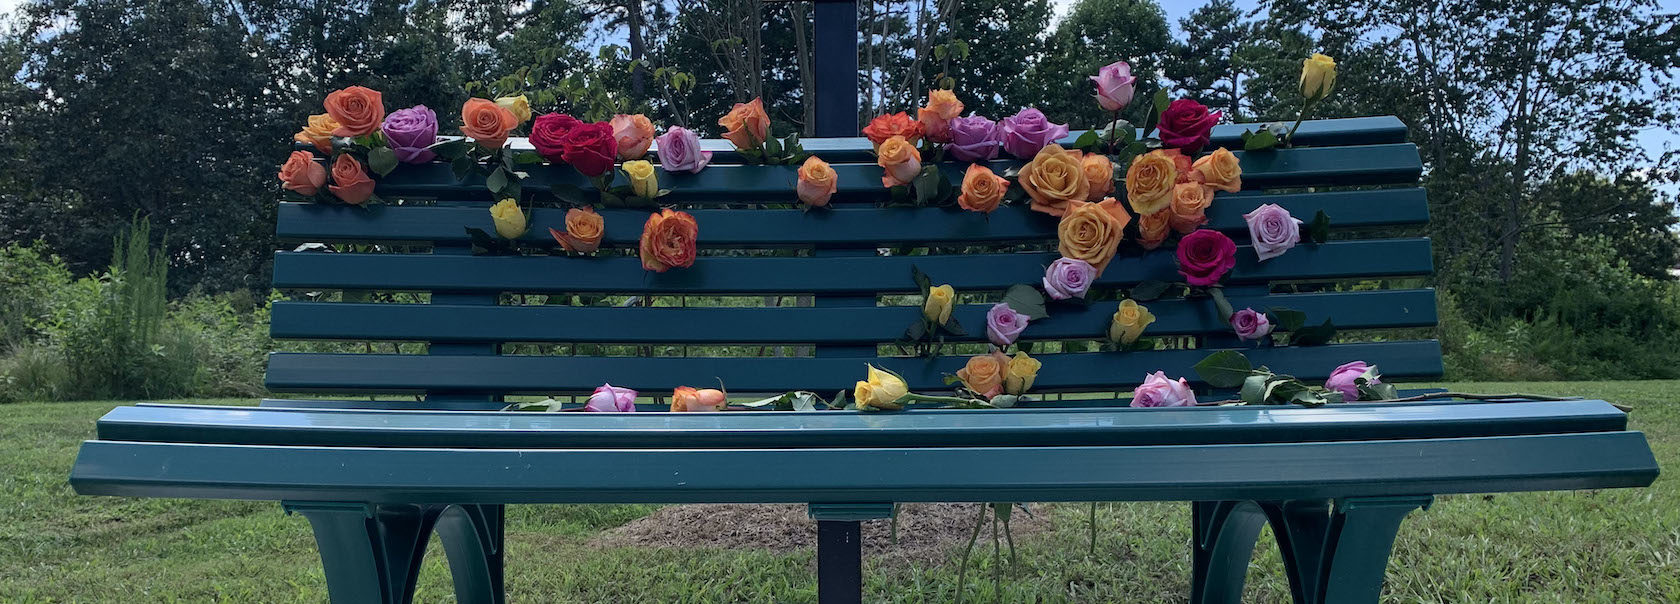 Bench covered with flowers